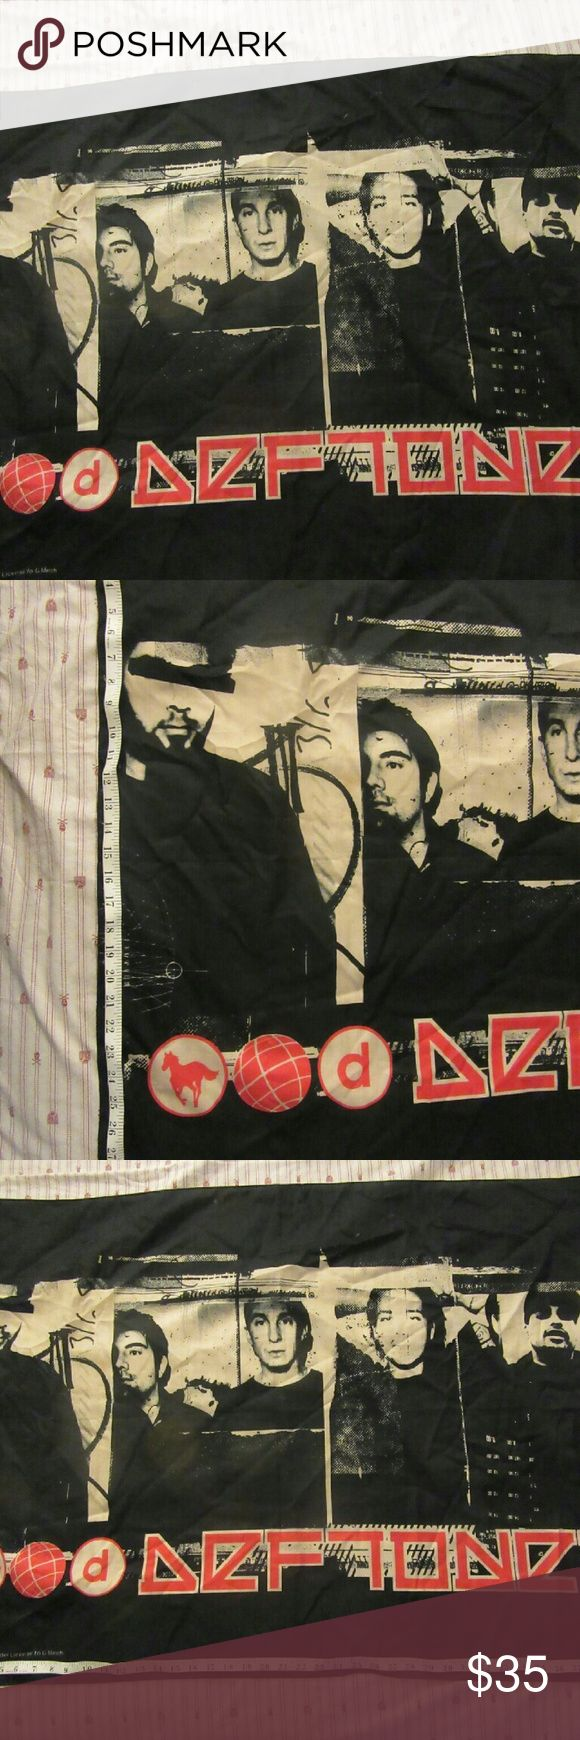 RARE Deftones Band cloth flag good shape : some flaws shown in pics  RARE Deftones Band Photo Chino Moreno Cloth Fabric Poster Flag Banner  has been used and was on a wall before so has holes on all corners deftones Accessories